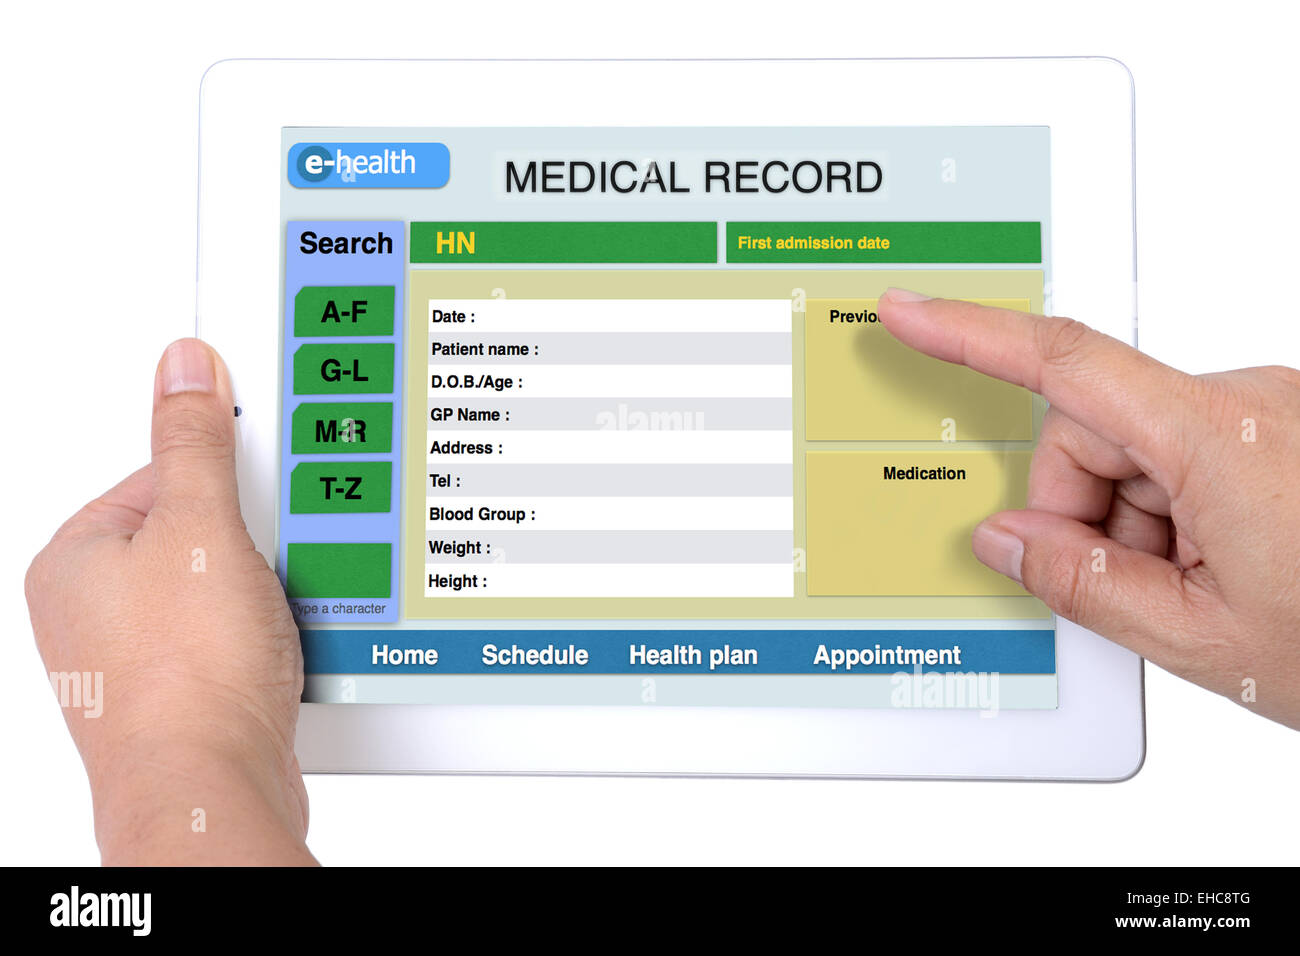 Medical record for e-health information on tablet. Stock Photo